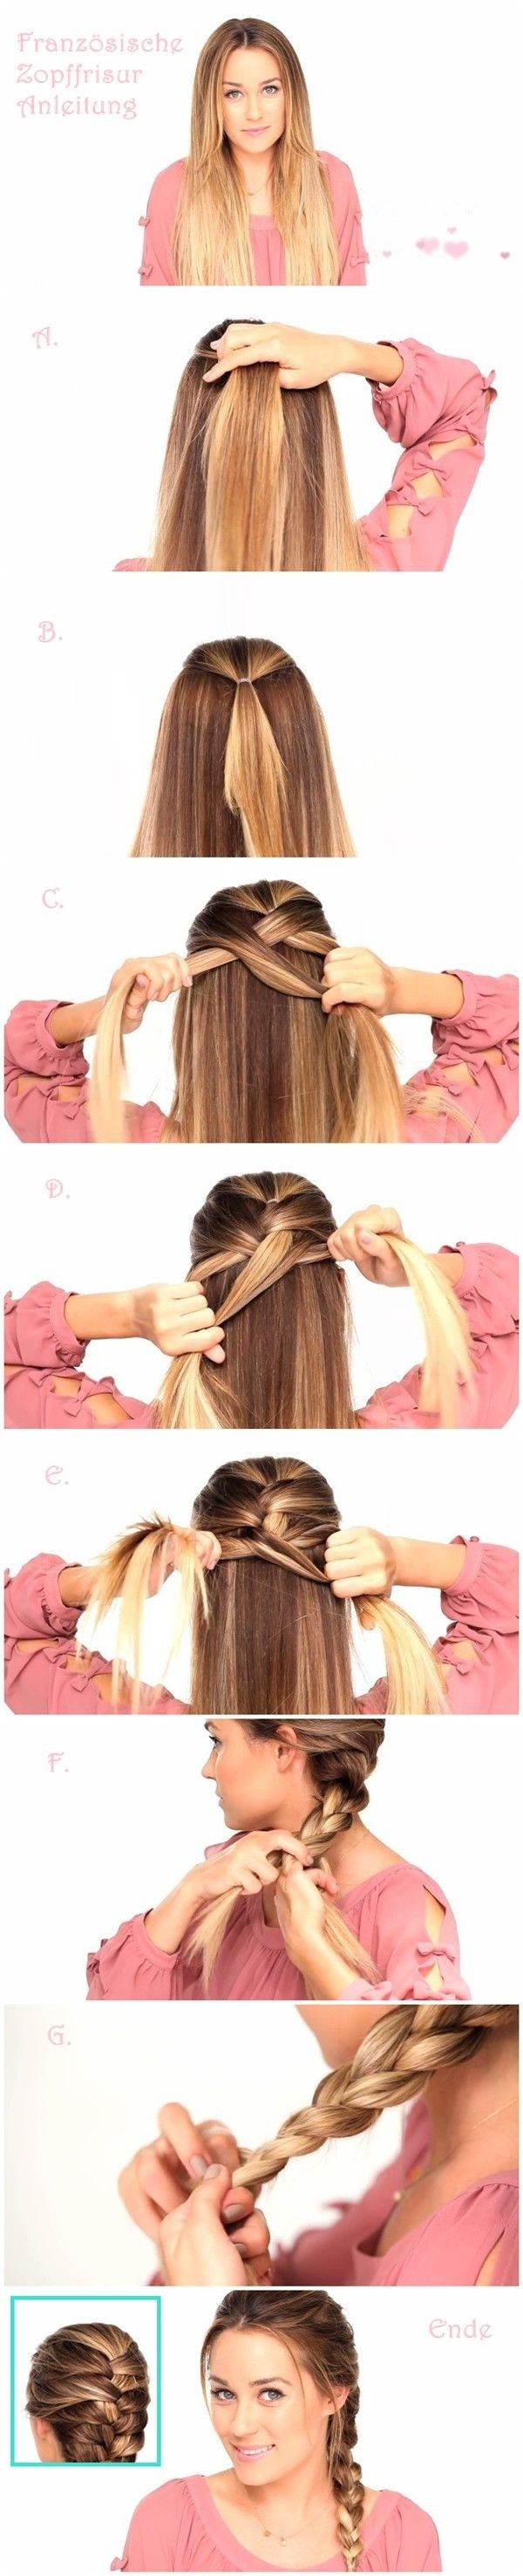 Swell 1000 Ideas About Easy Braided Hairstyles On Pinterest Types Of Short Hairstyles For Black Women Fulllsitofus